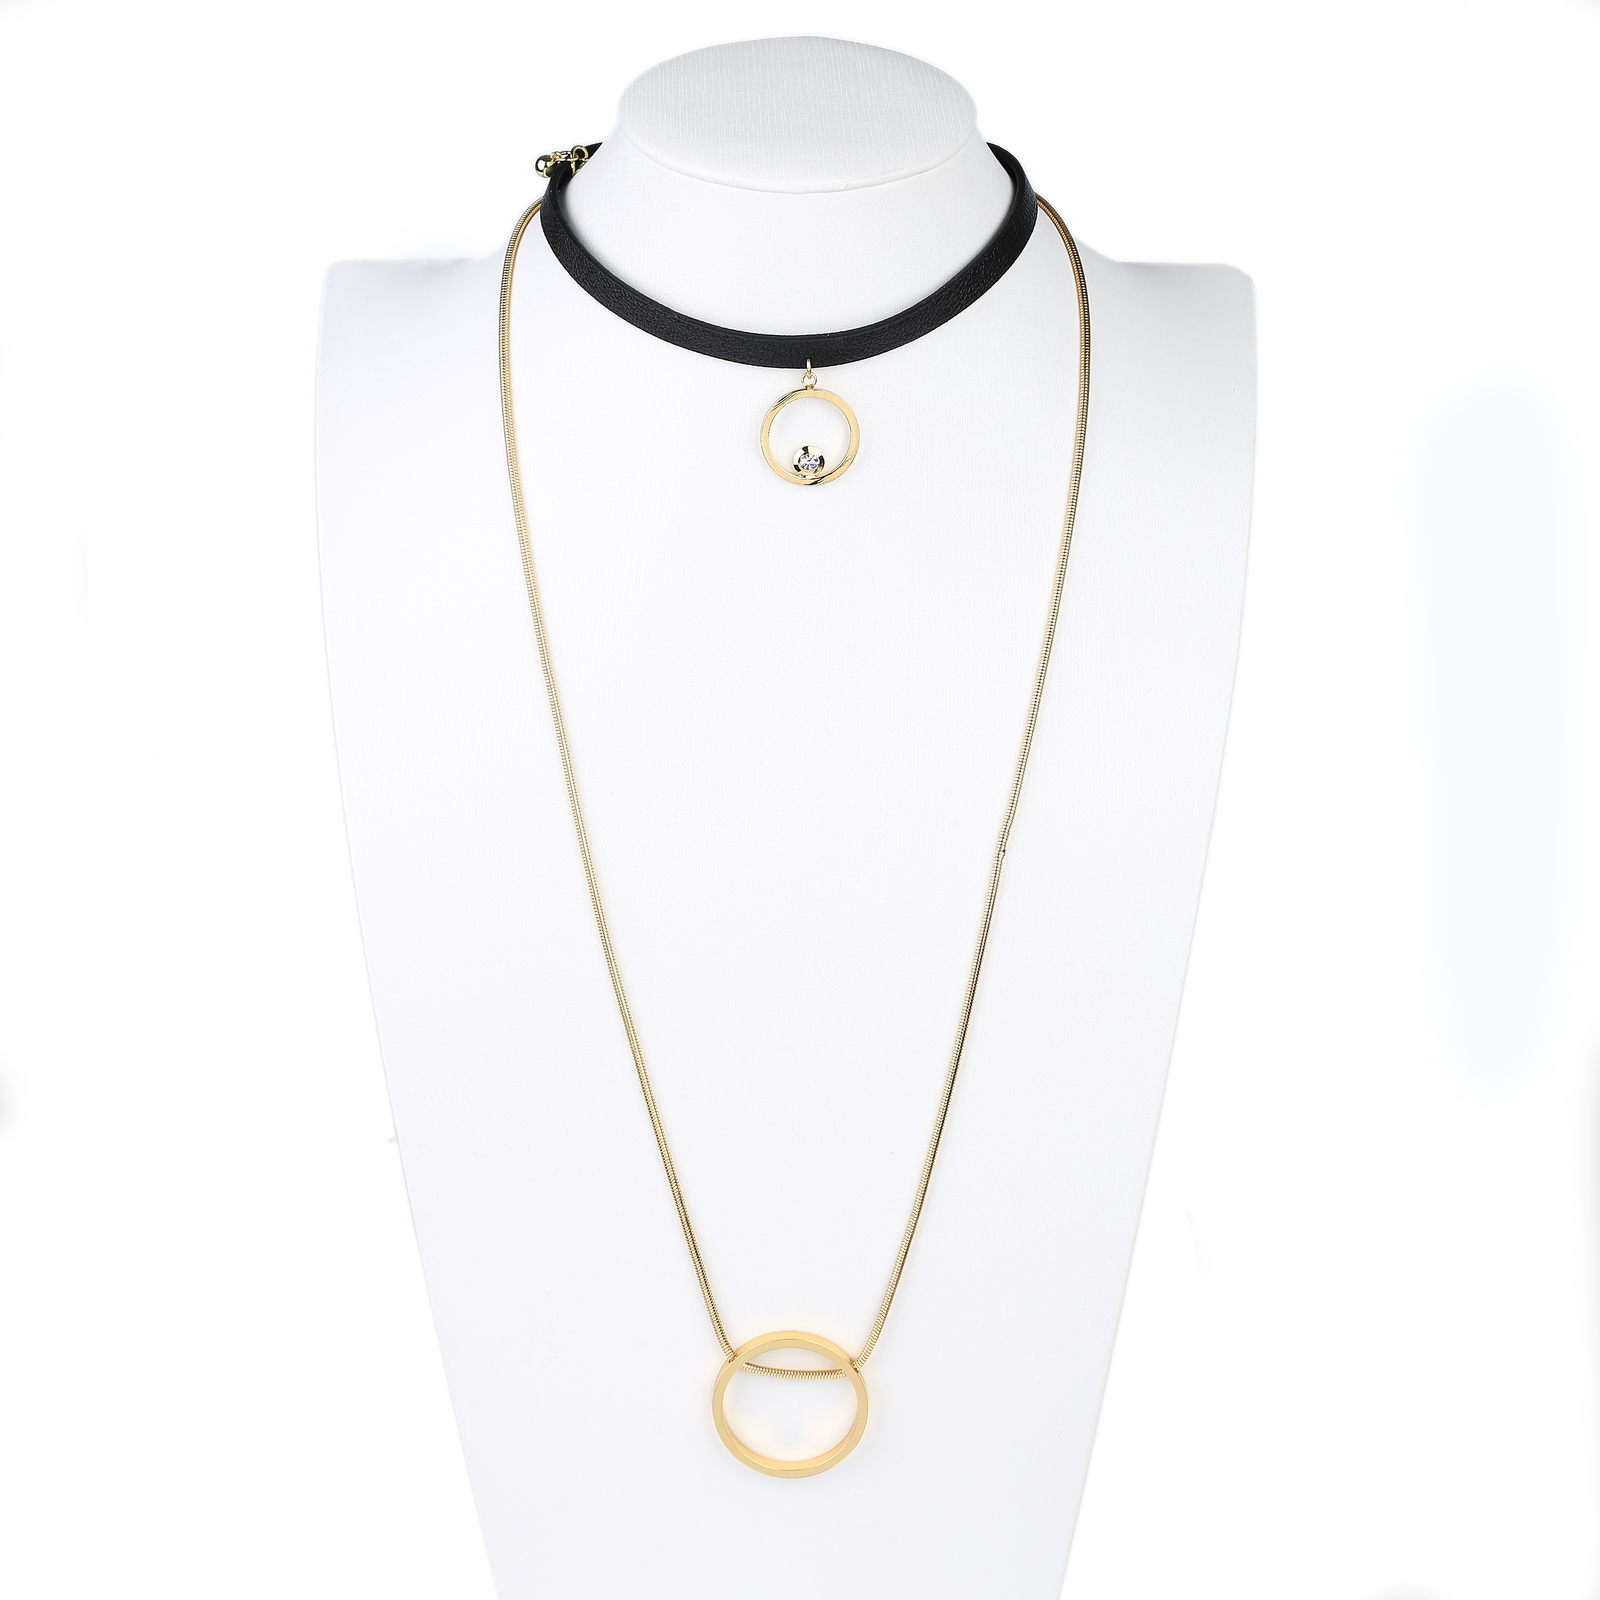 Primary image for UE- Black & Gold Tone Designer Choker Necklace Combination With Circle Pendants